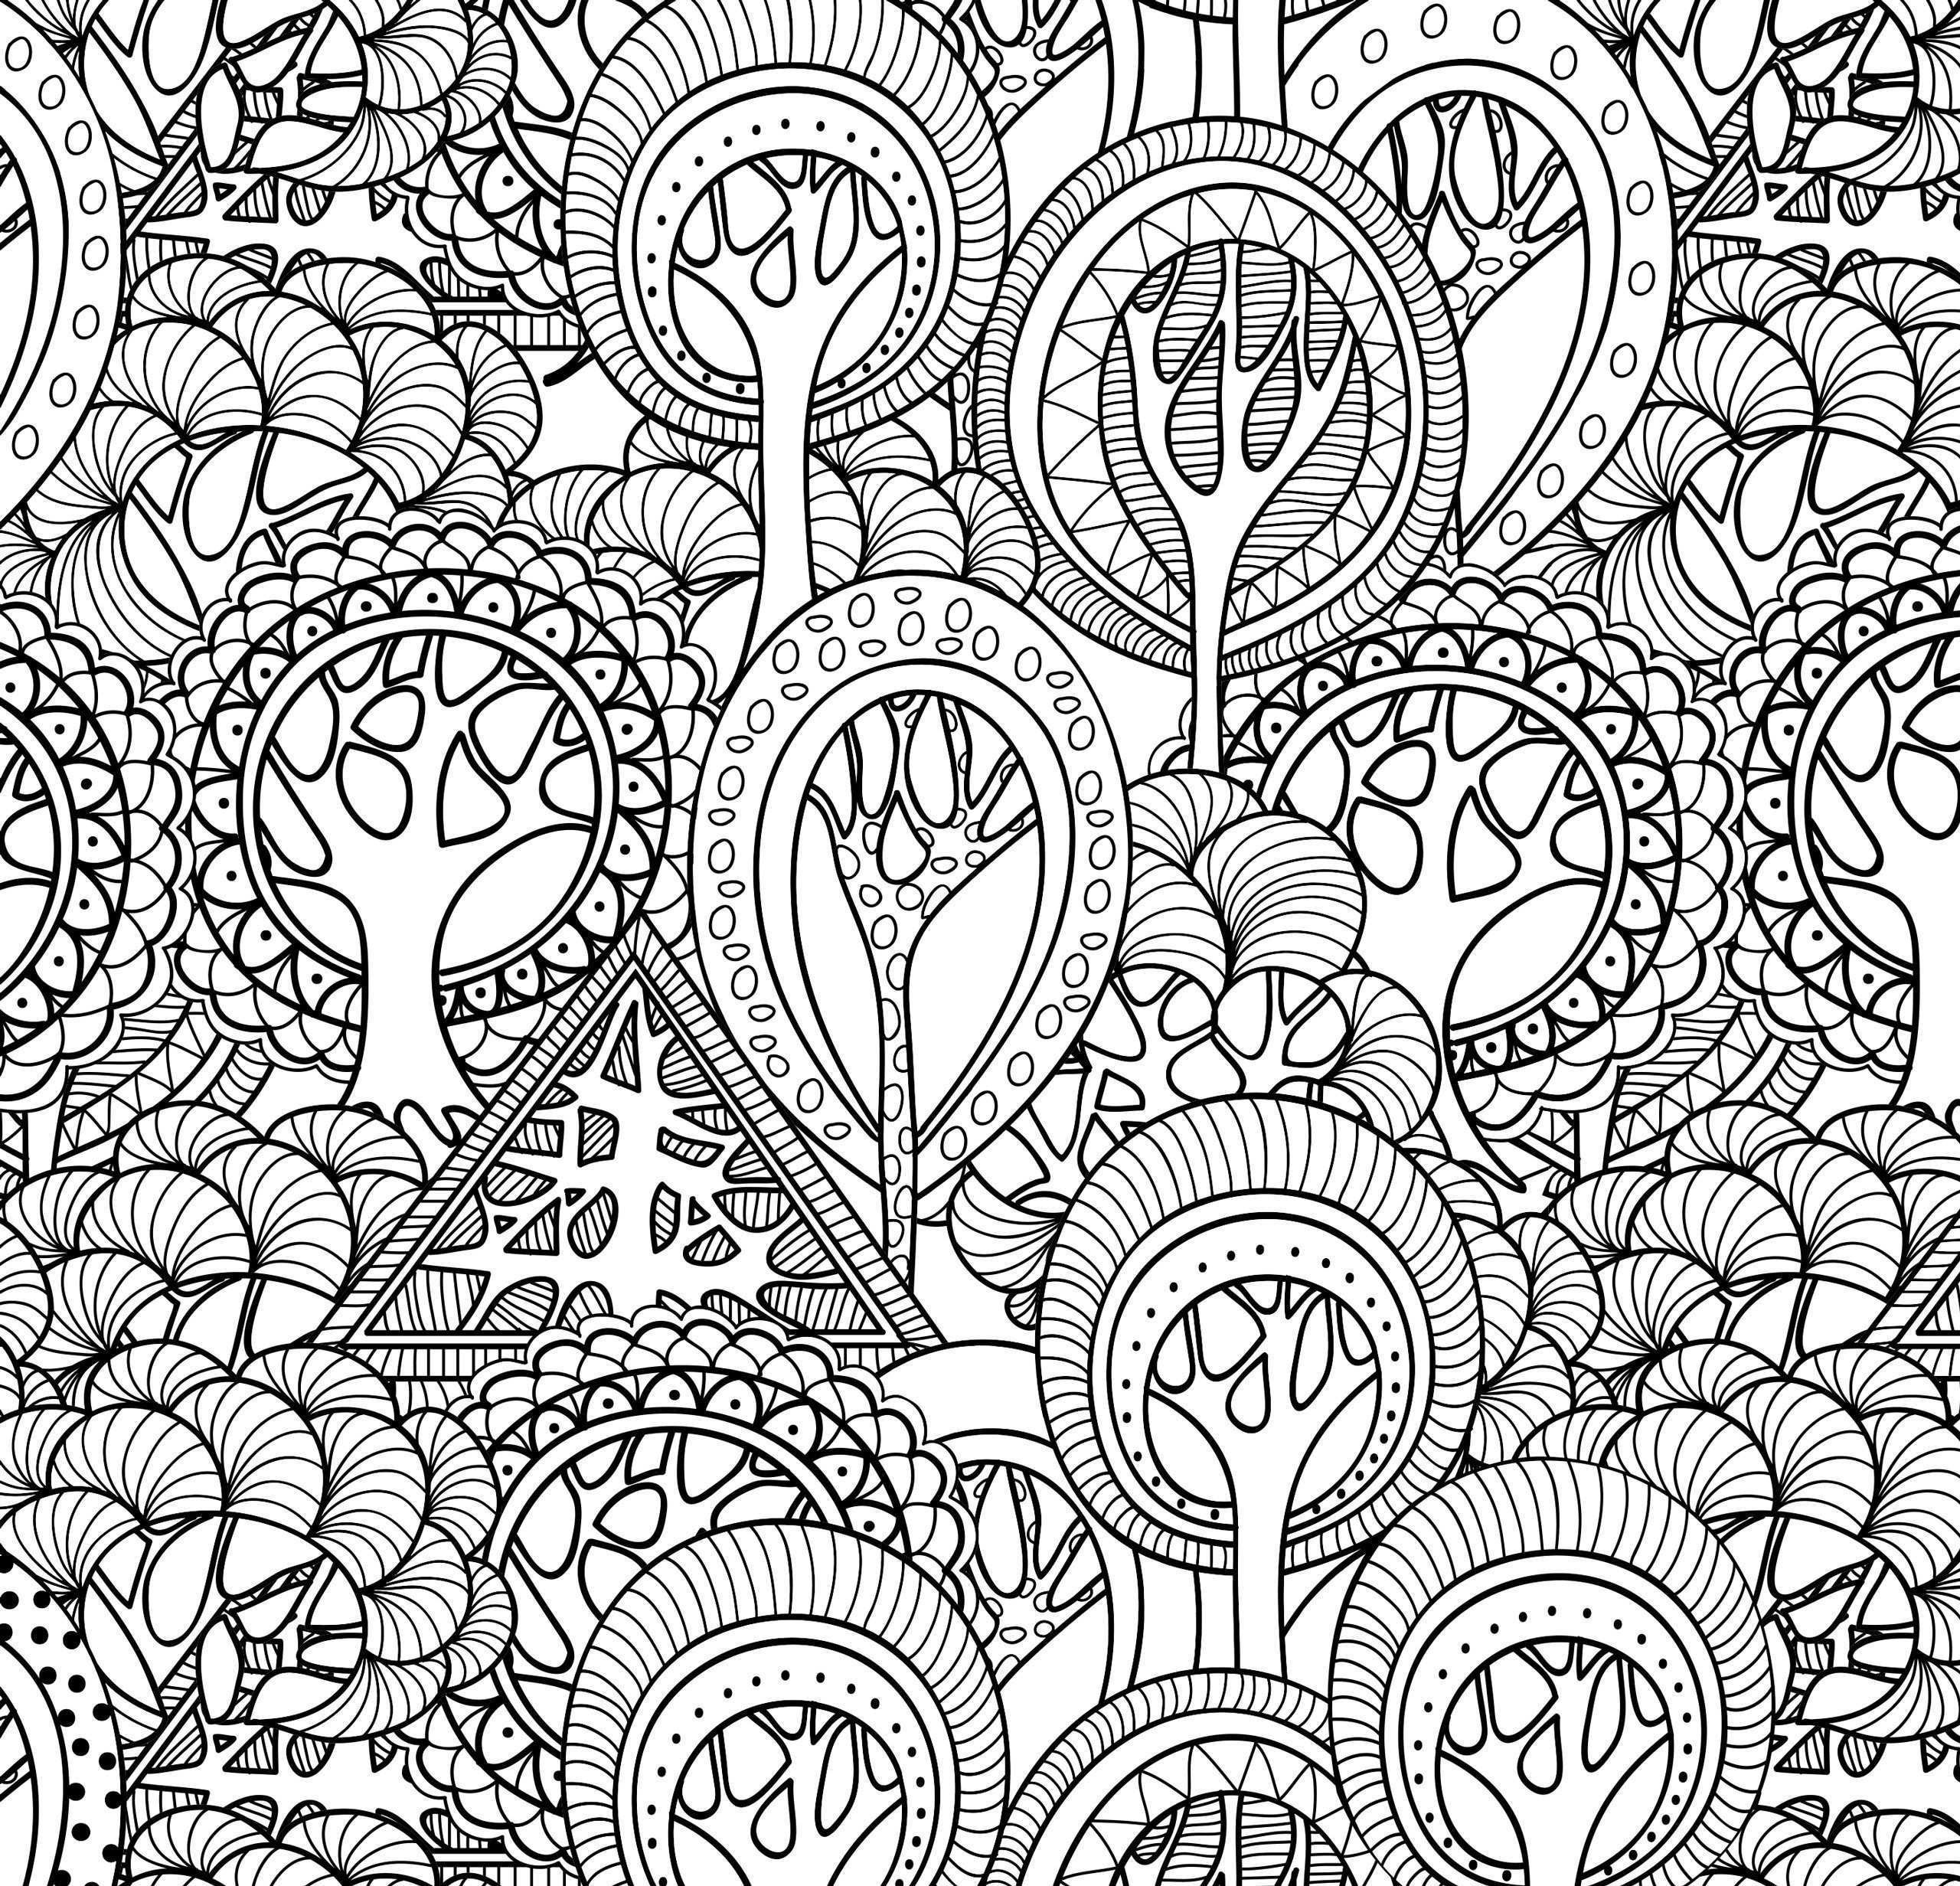 Free Printable Complicated Coloring Pages Online